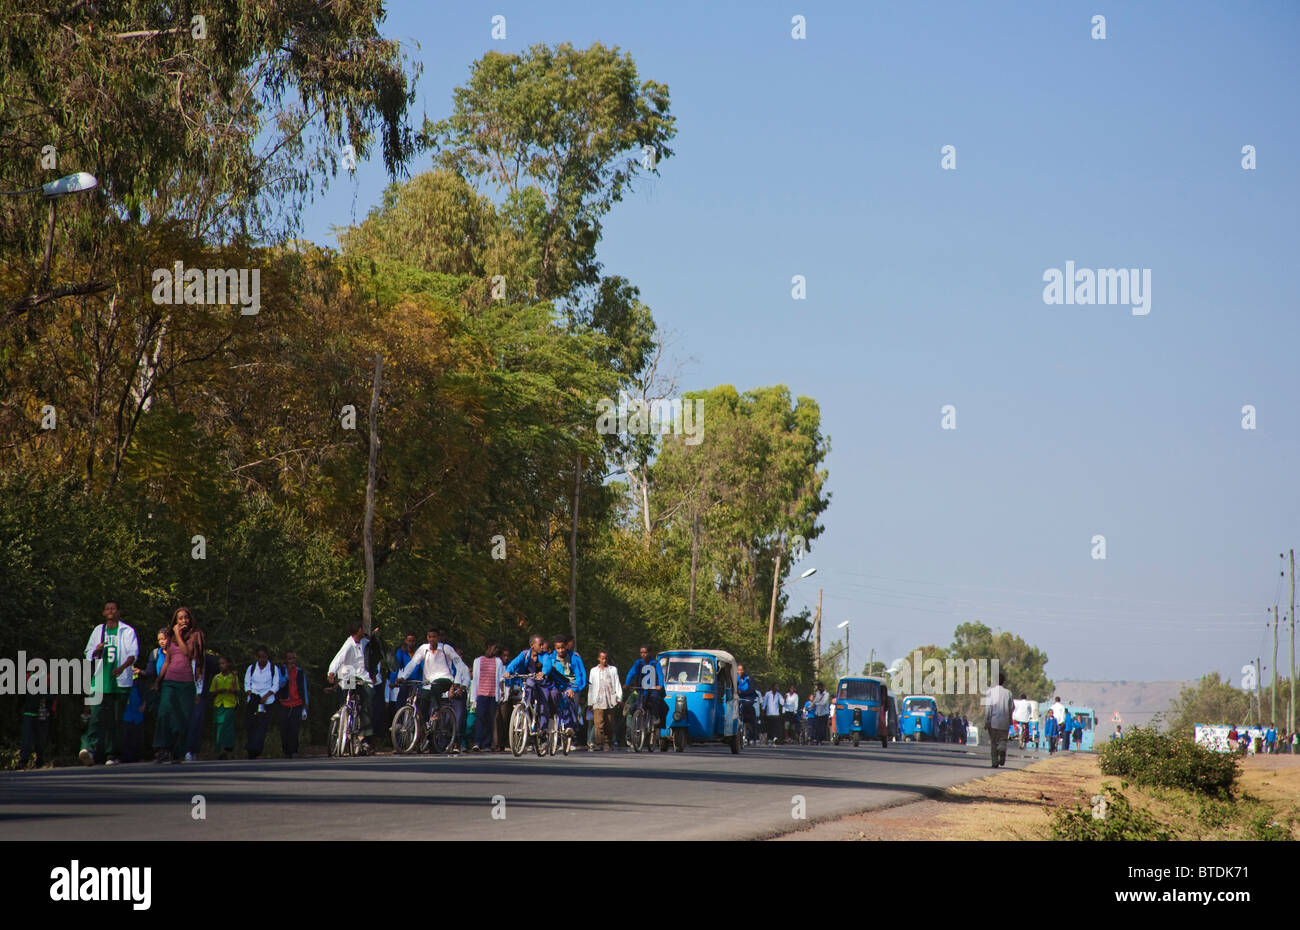 Scholars, pedestrians and bajaj taxis walking into Awassa - Stock Image